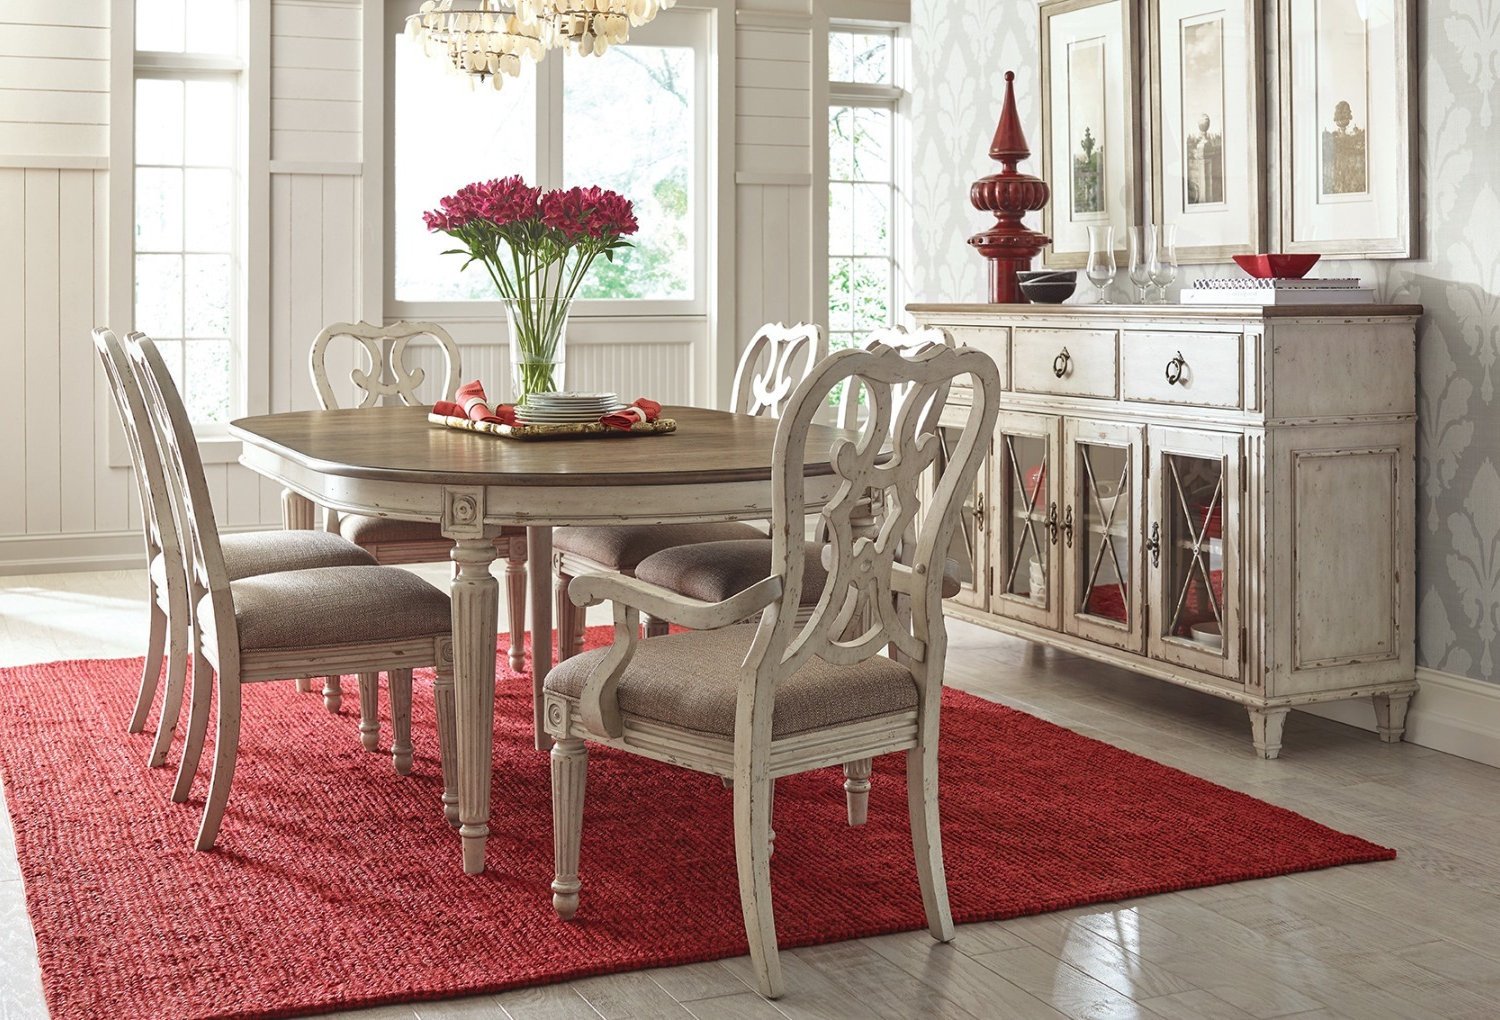 North Reading 5 Piece Dining Table Sets With Regard To Famous American Drew Furniture Of North Carolina (View 25 of 25)